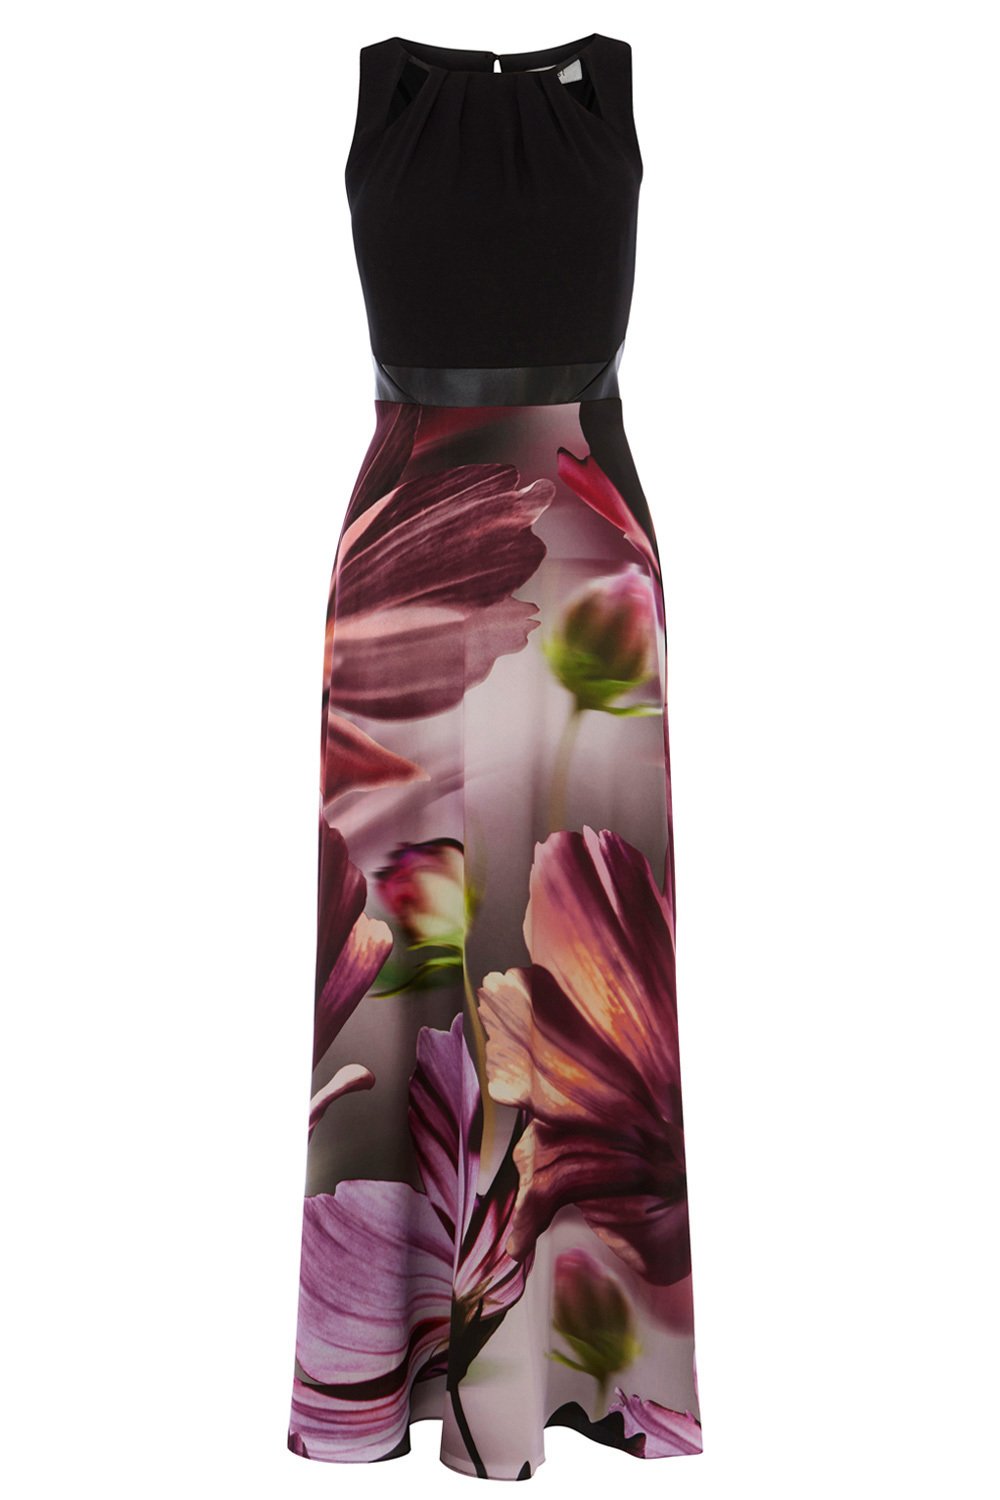 Amalfi Print Adrie Maxi Dress - neckline: round neck; sleeve style: sleeveless; style: maxi dress; predominant colour: purple; secondary colour: black; occasions: evening; length: floor length; fit: fitted at waist & bust; fibres: polyester/polyamide - 100%; sleeve length: sleeveless; texture group: crepes; pattern type: fabric; pattern size: big & busy; pattern: florals; multicoloured: multicoloured; season: s/s 2016; wardrobe: event; embellishment: contrast fabric; embellishment location: top